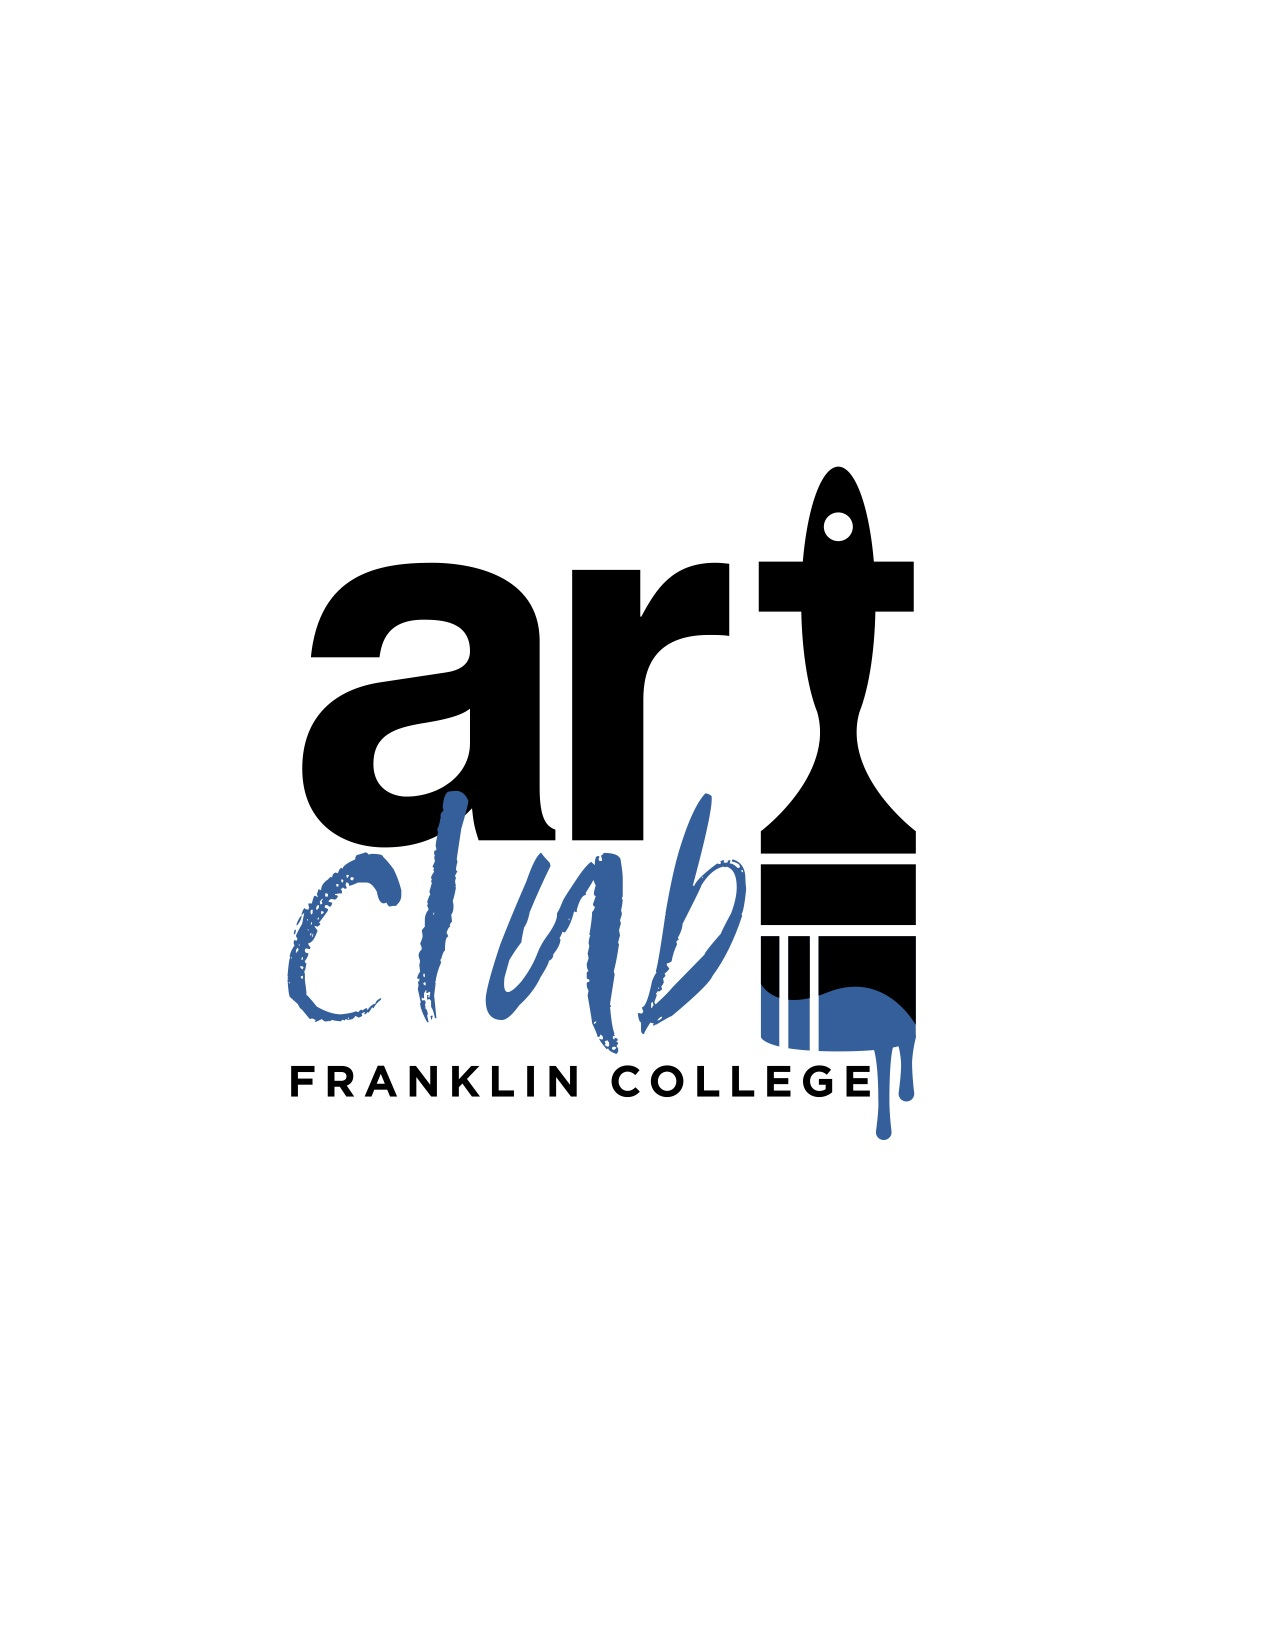 club portfolio fc painting college logos designs artist easy tee shirts poster related franklin magazine clipground